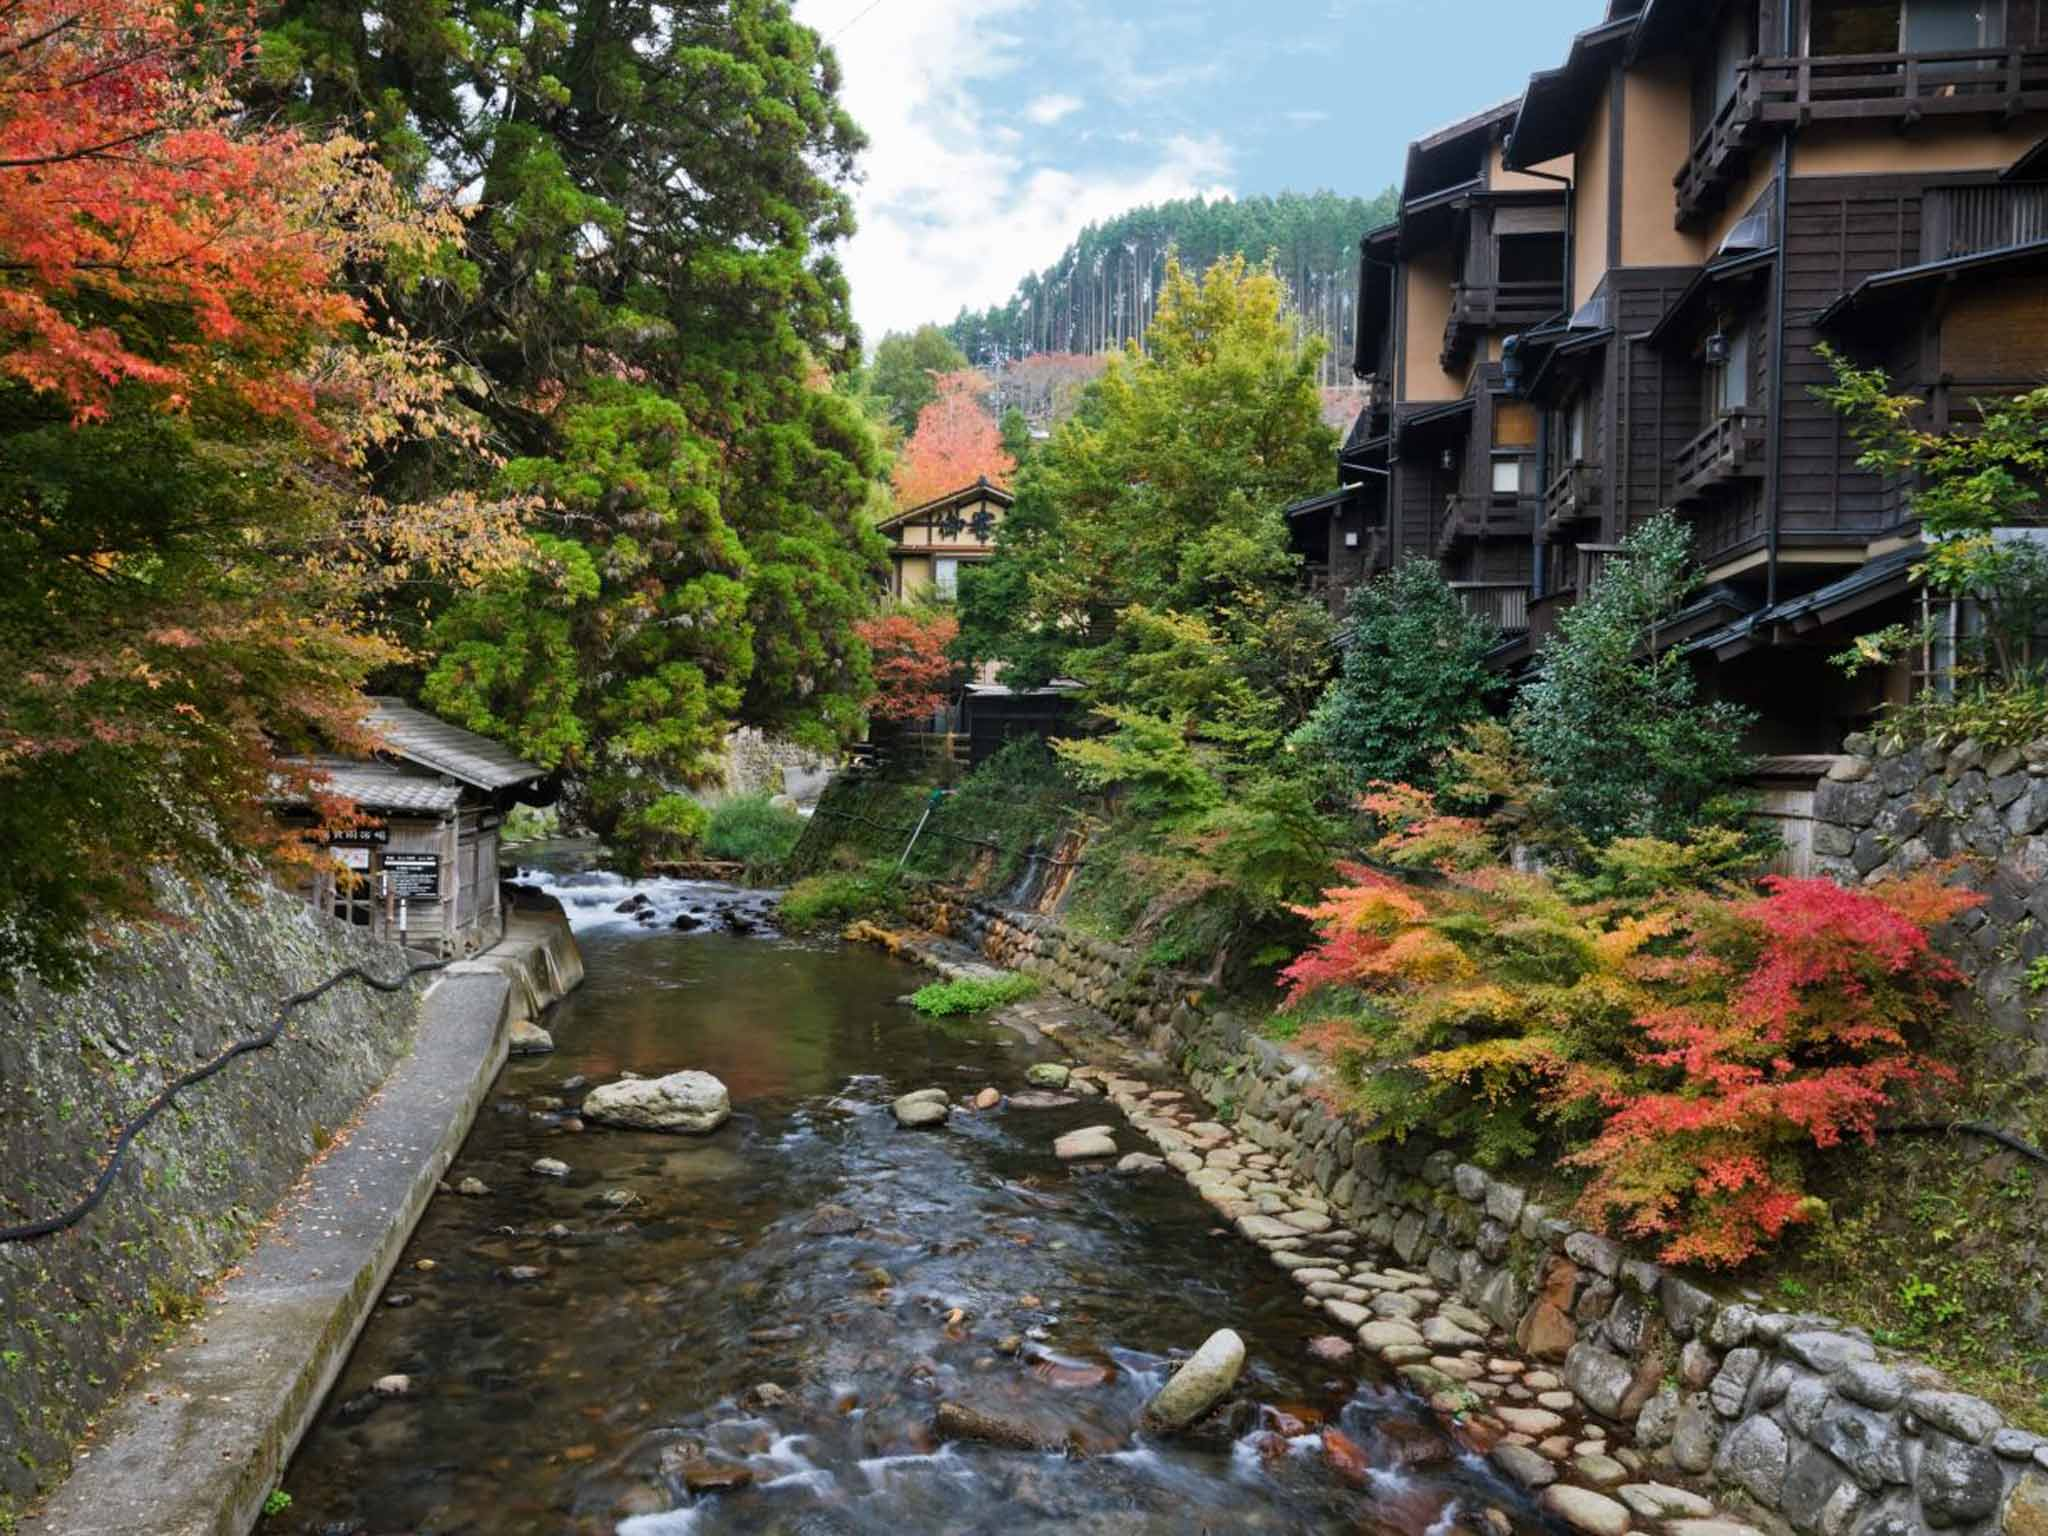 Luxury train journey through Japan's secret south: All aboard for the island of Kyushu